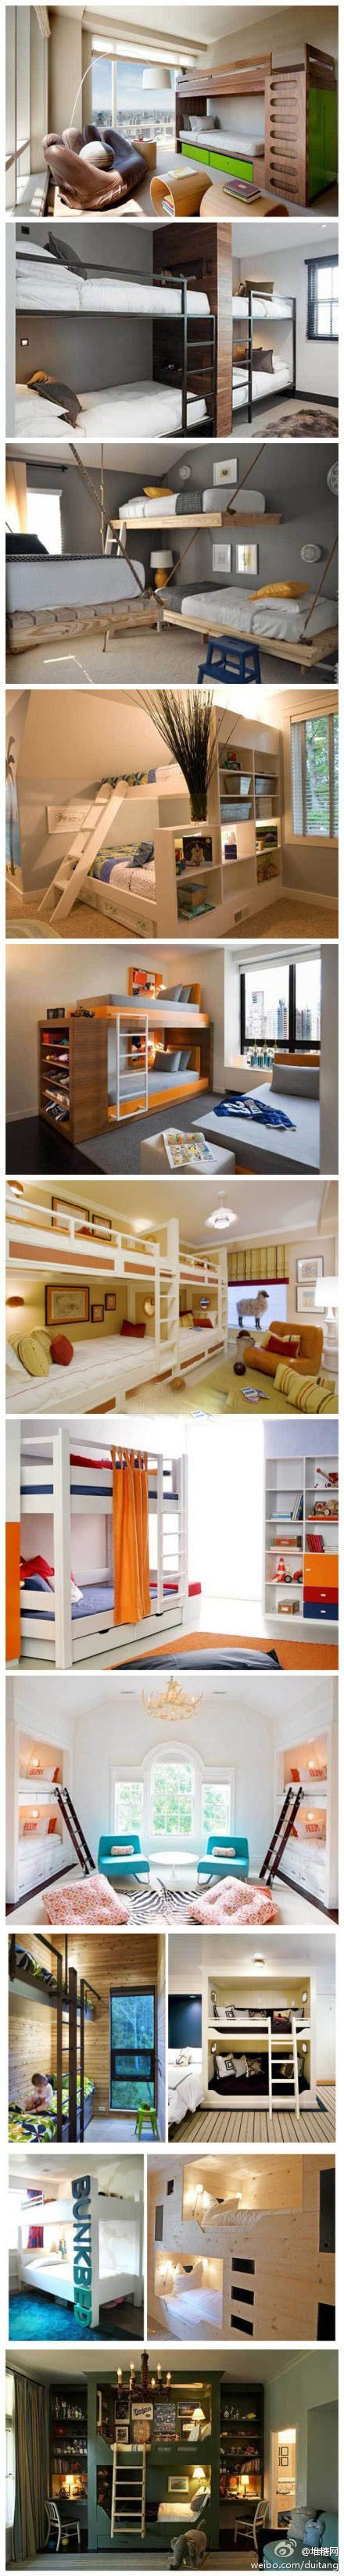 best our new house uc images on pinterest bedroom ideas home